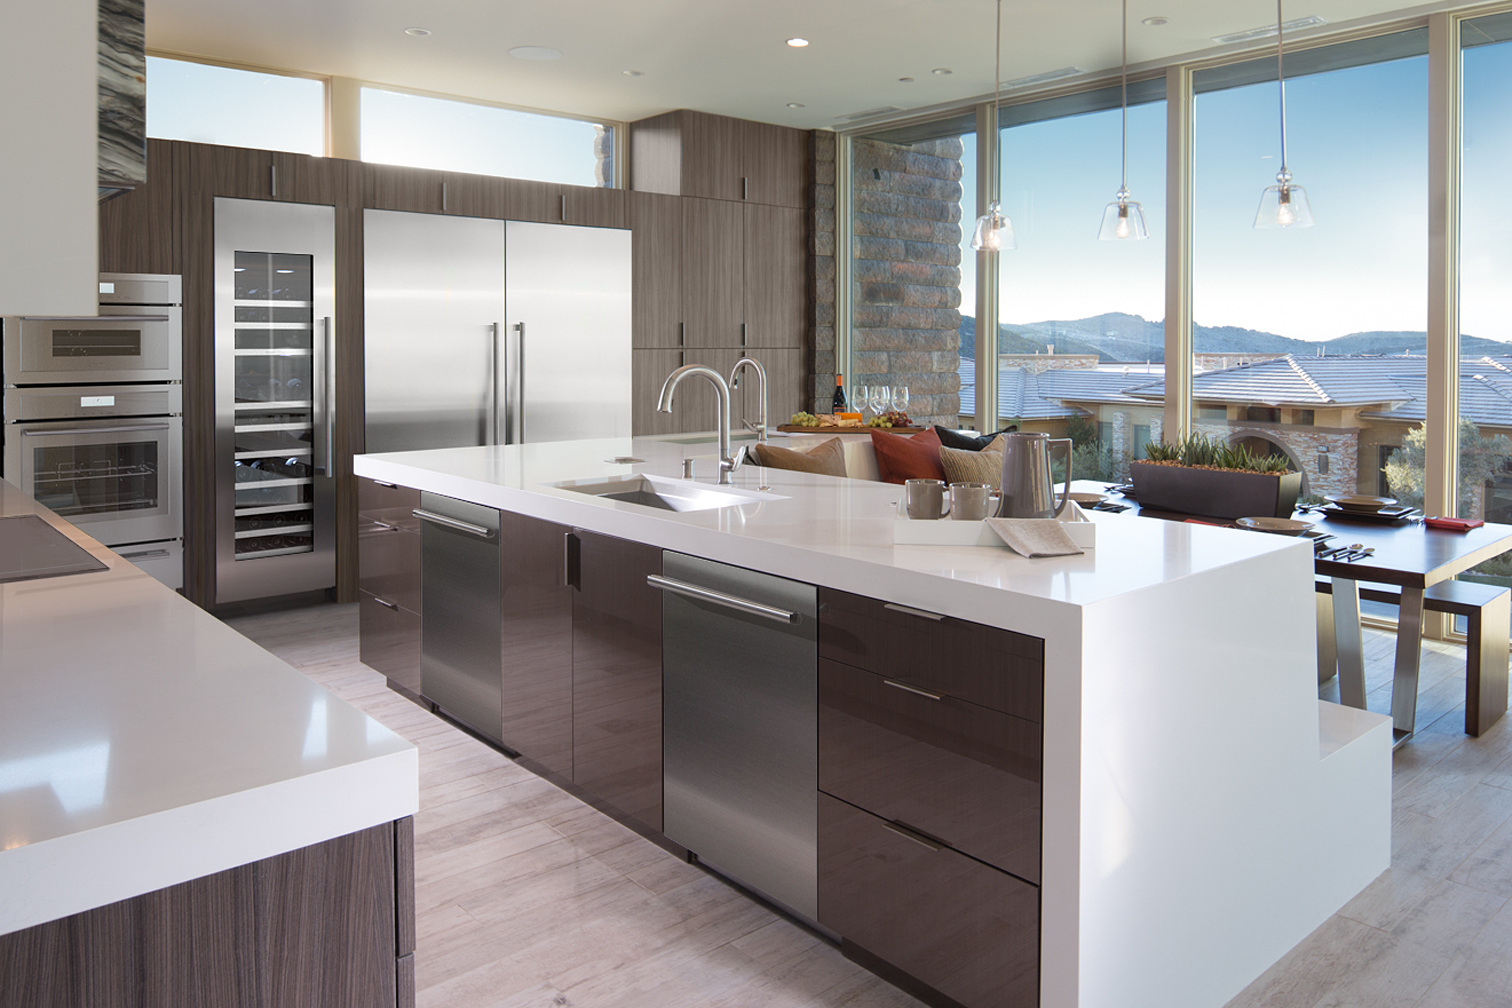 Open Concept With A View Kitchen Design Gallery Minimalist Kitchen Design Open Concept Kitchen